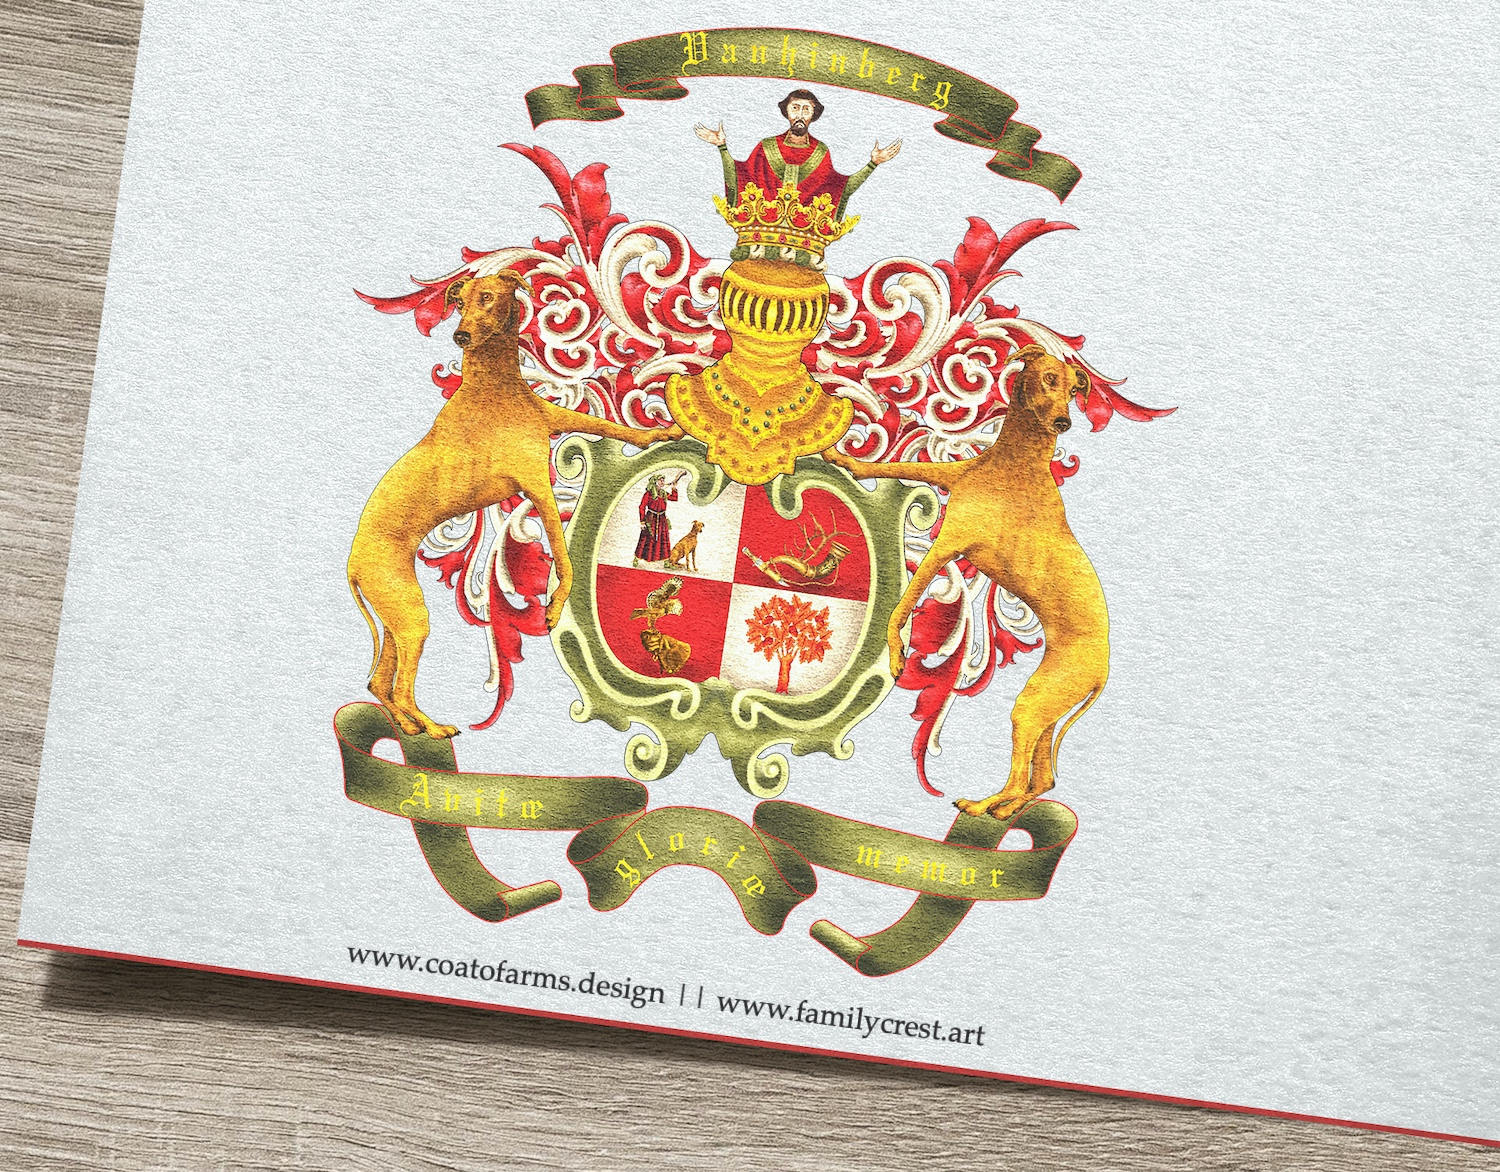 Family crest I designed for the Vanhinberg family from Germany big